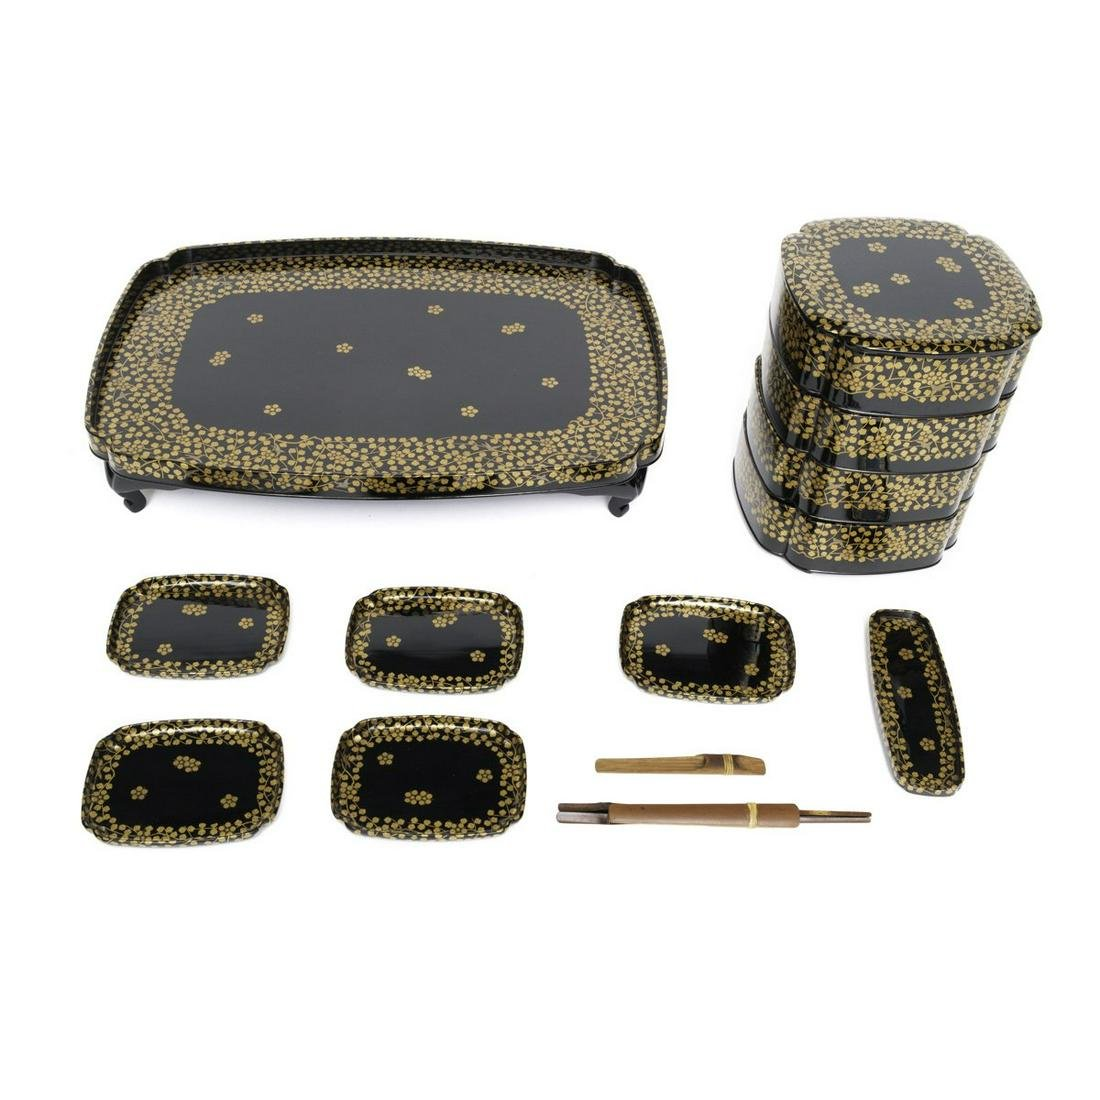 Large picknick Toso set consisting 14 lacquered pieces